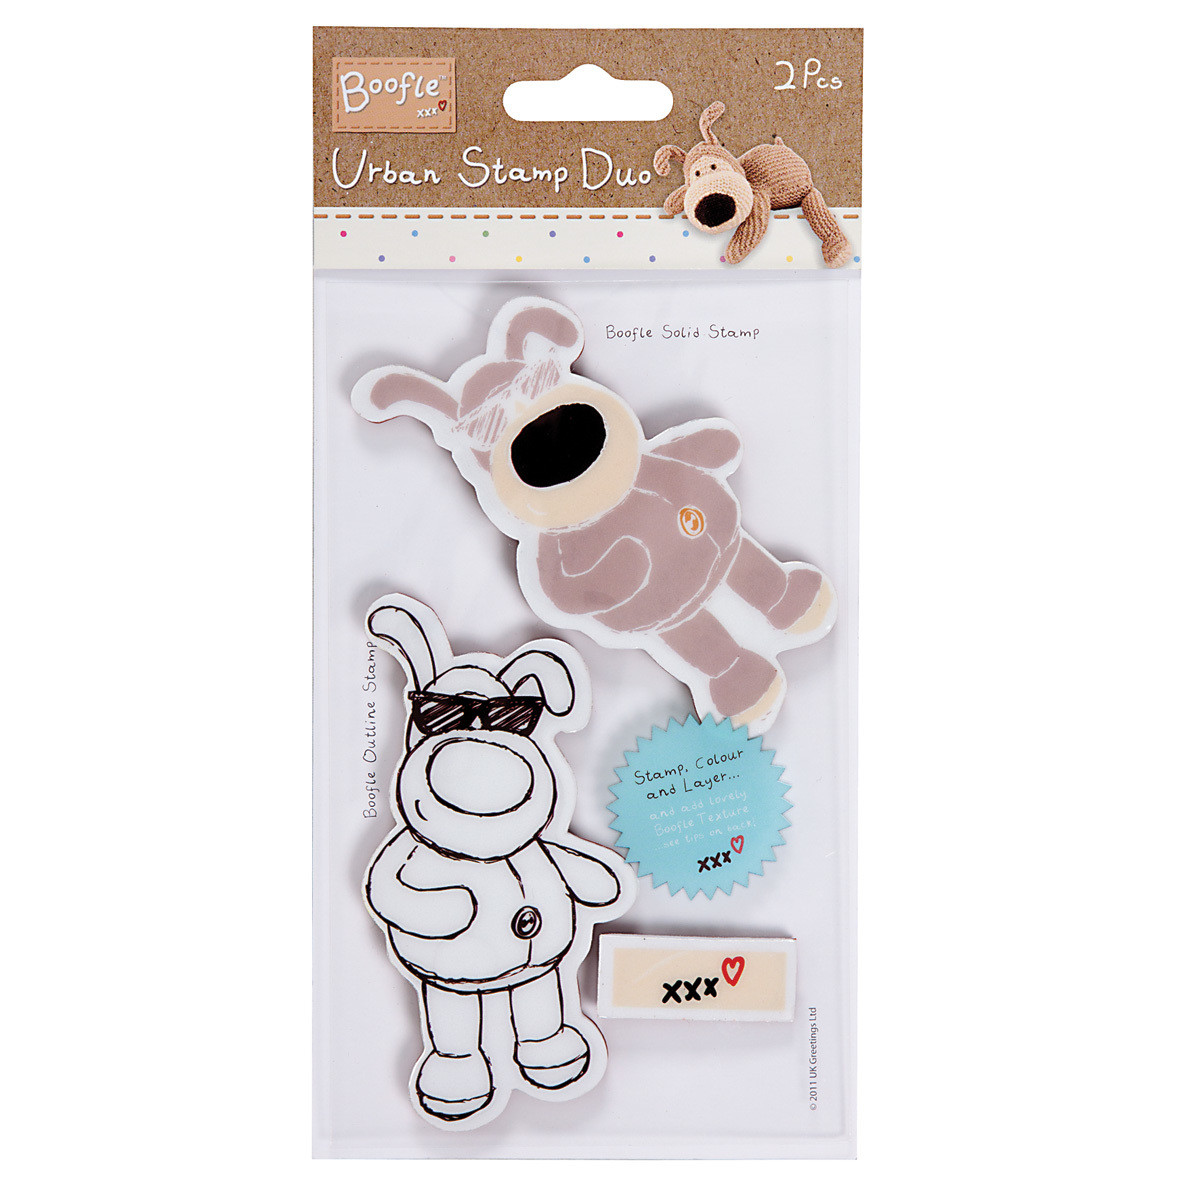 Штамп DOCRAFTS Urban Stamp - Boofle, Mr. Cool